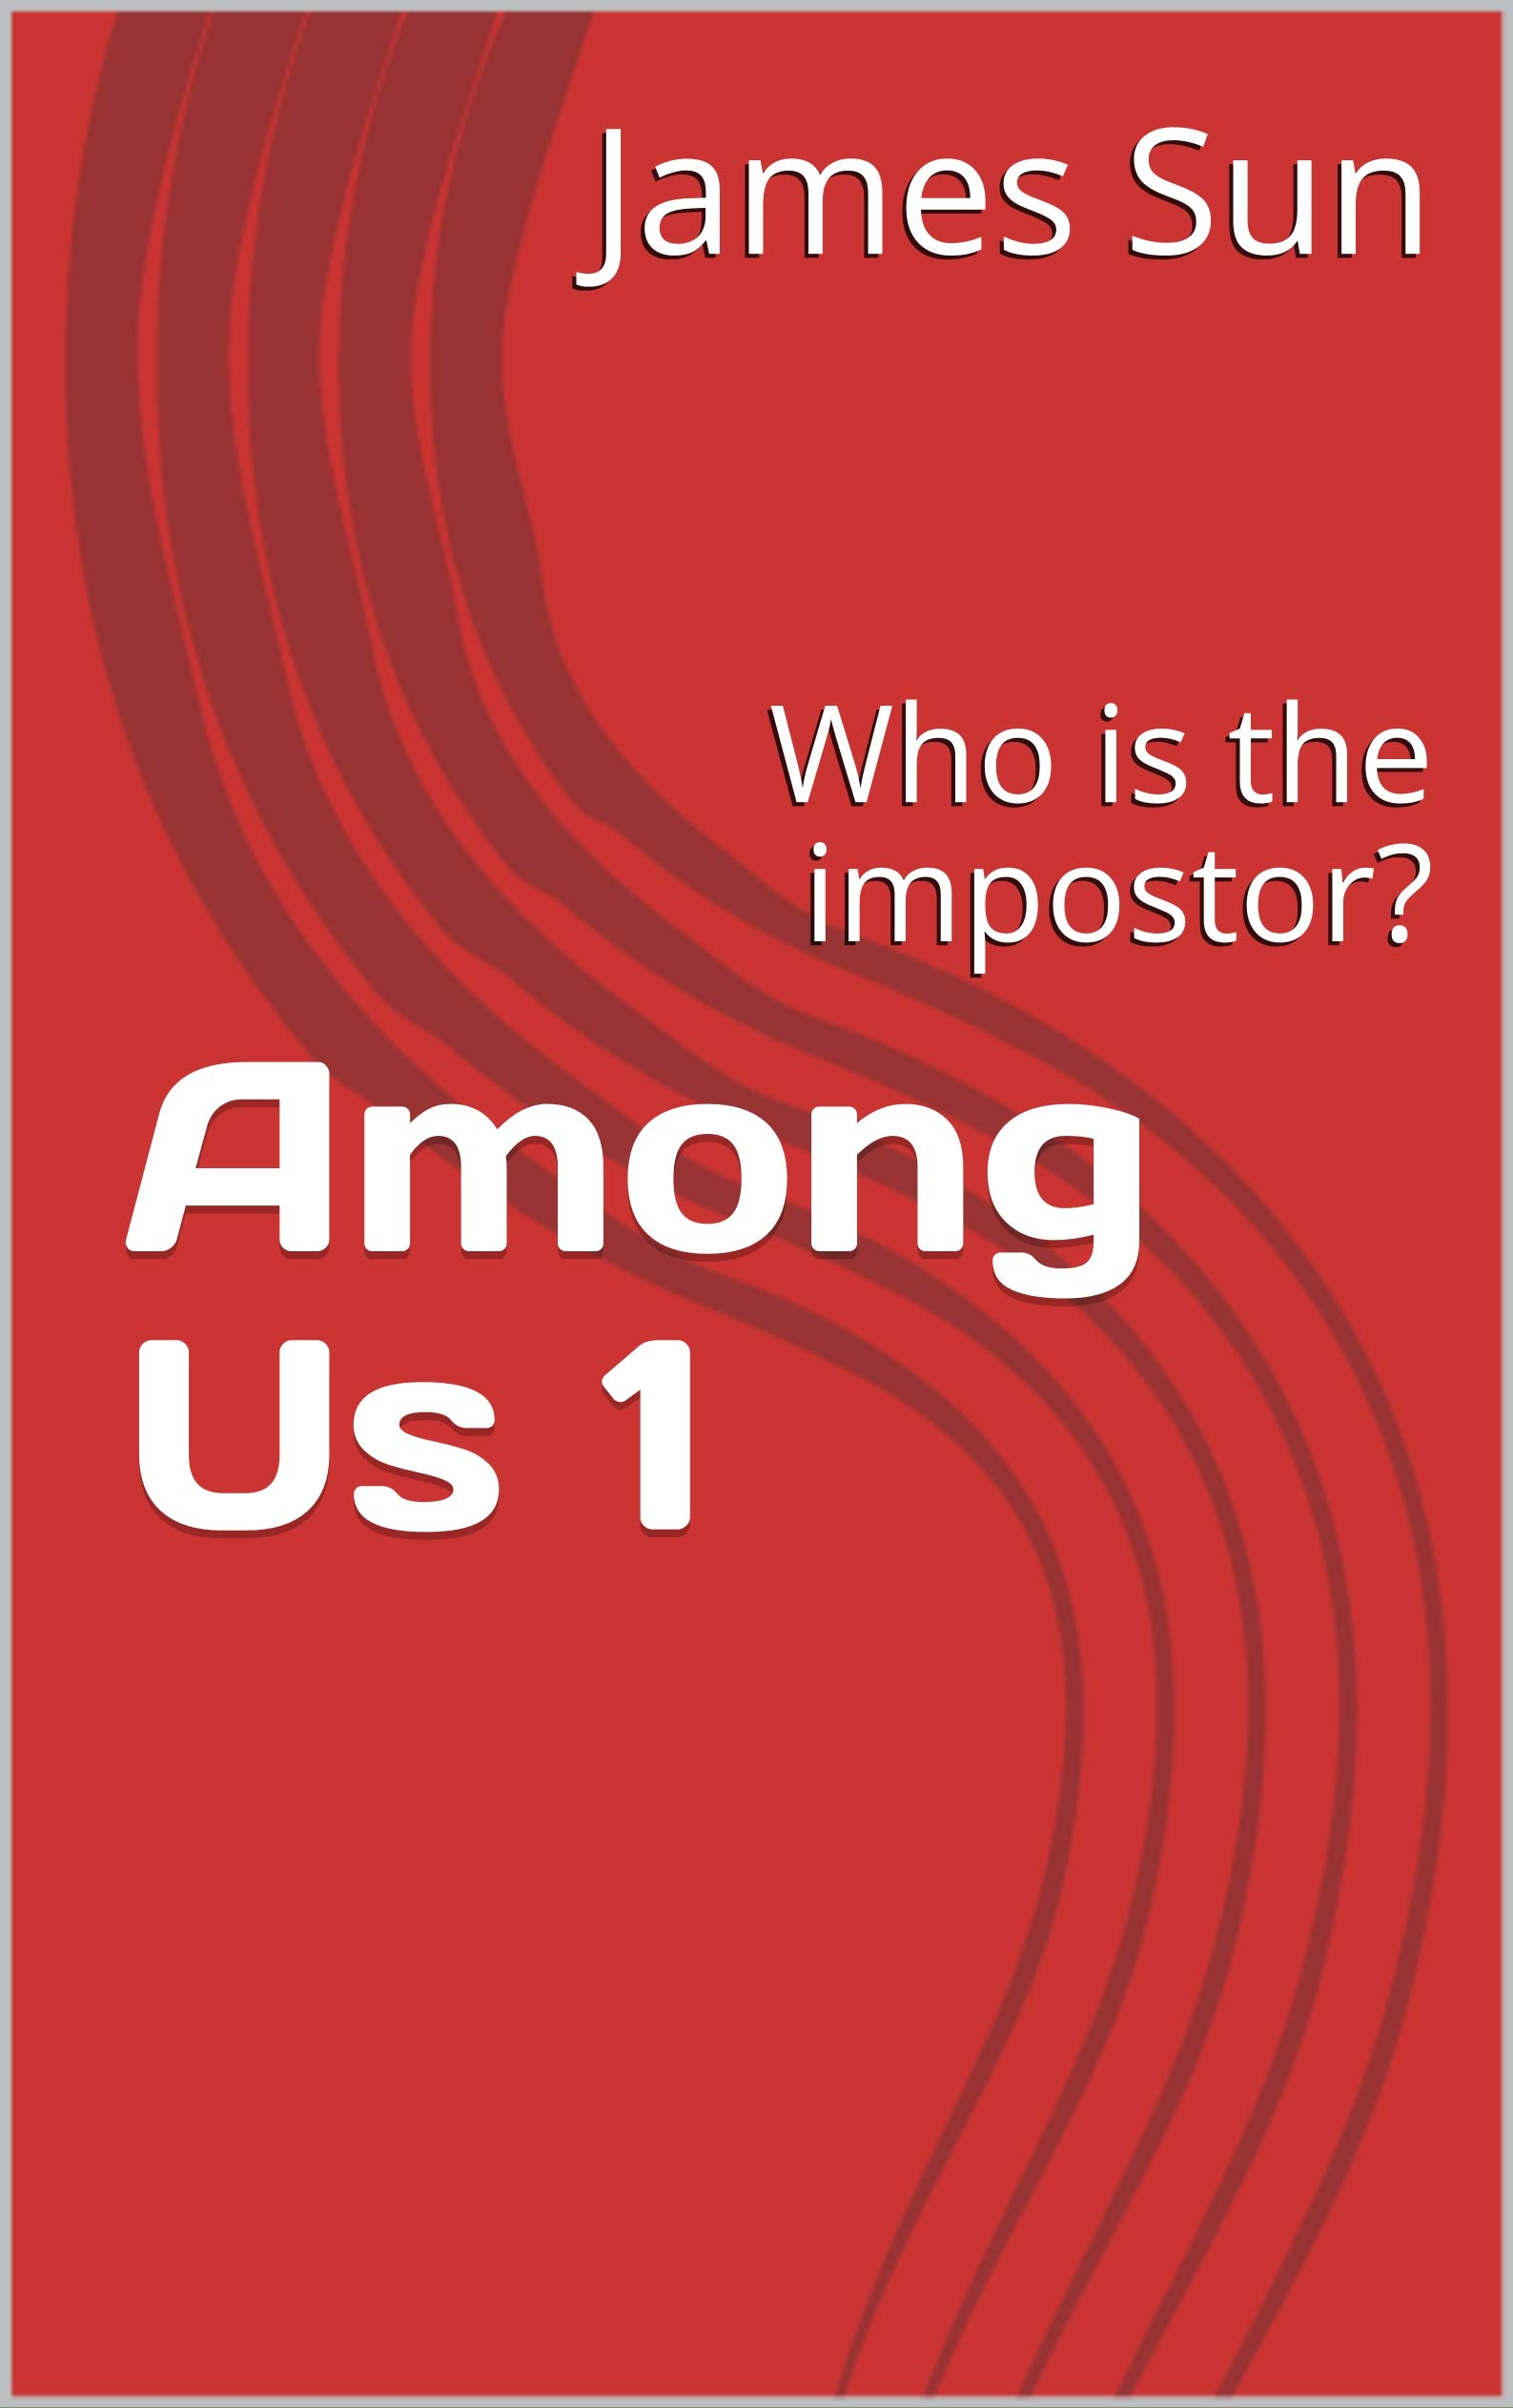 Among Us 1: Who is the impostor?